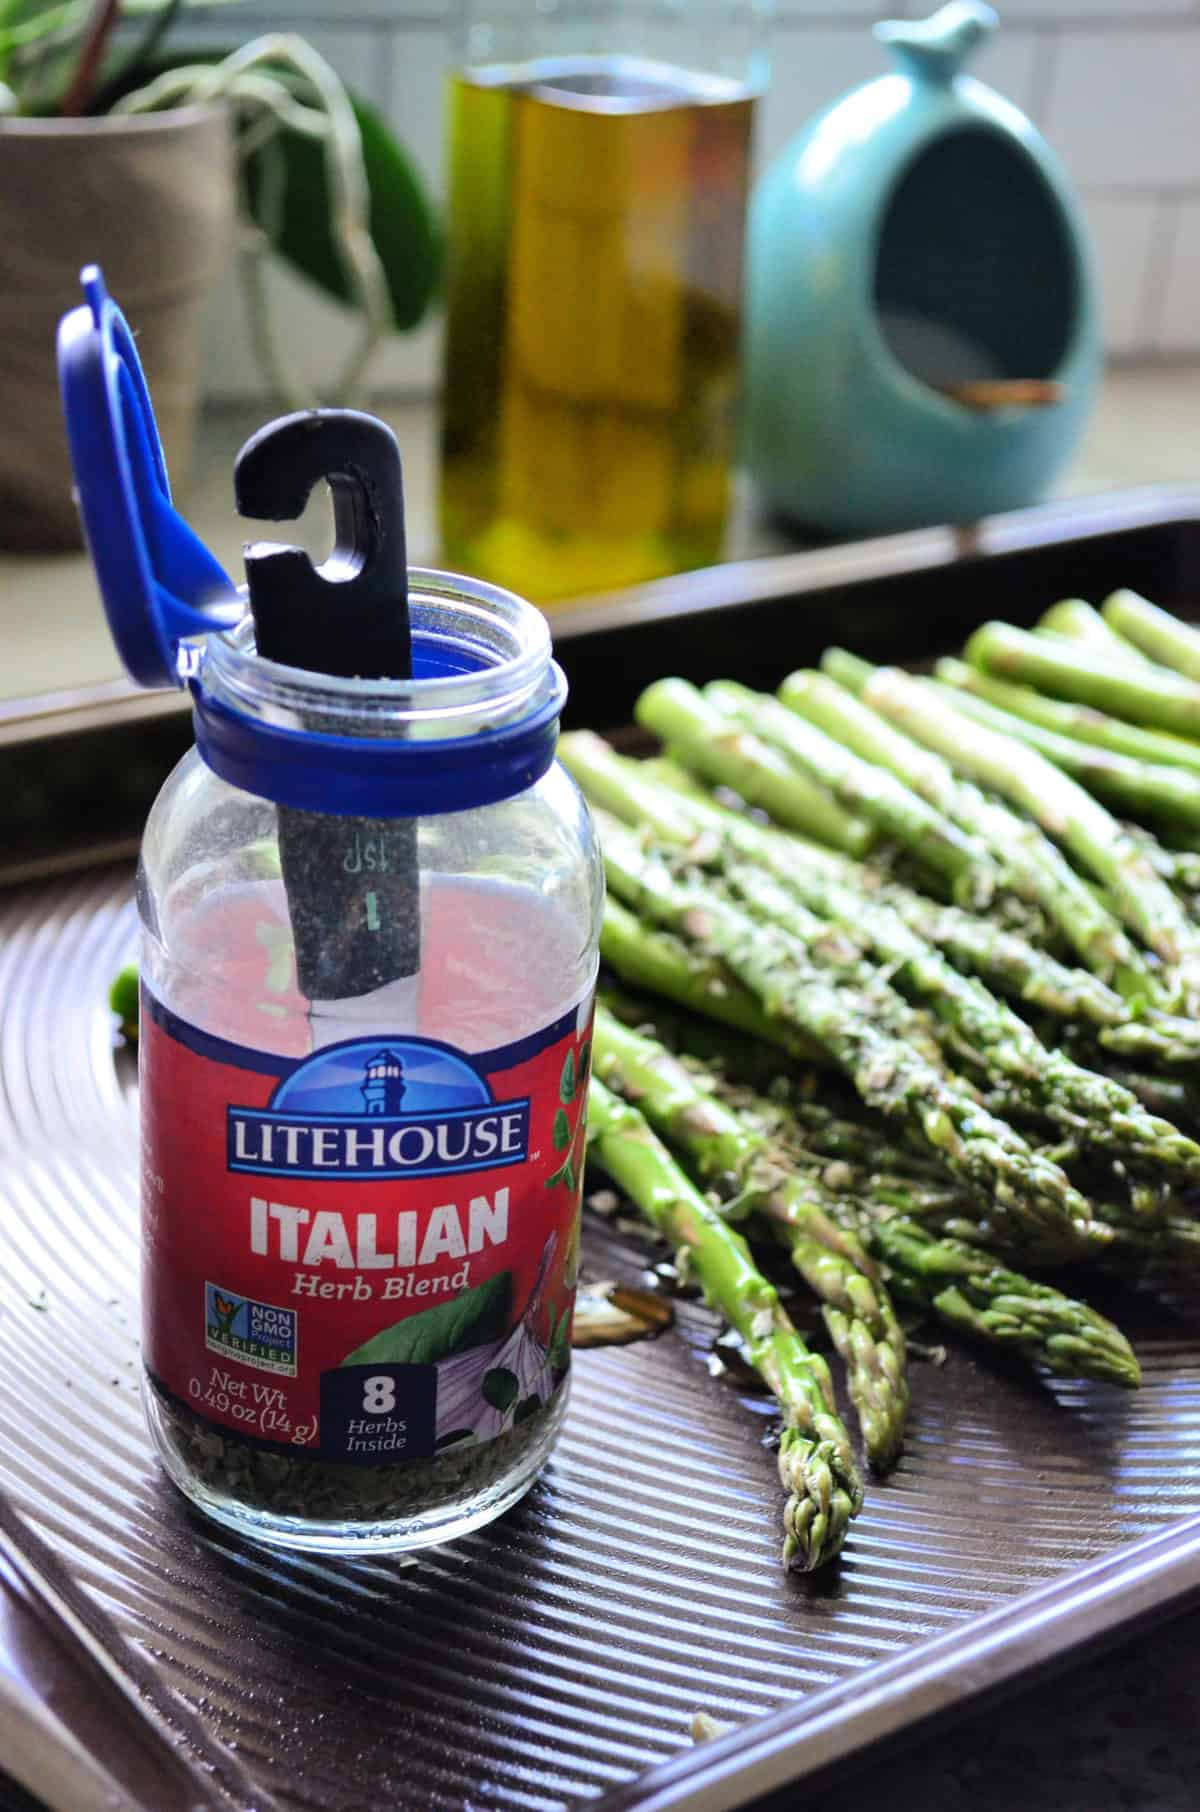 Close up of 1 tsp dipped into bottle of Litehouse Italian Herb blend set on asparagus pan.